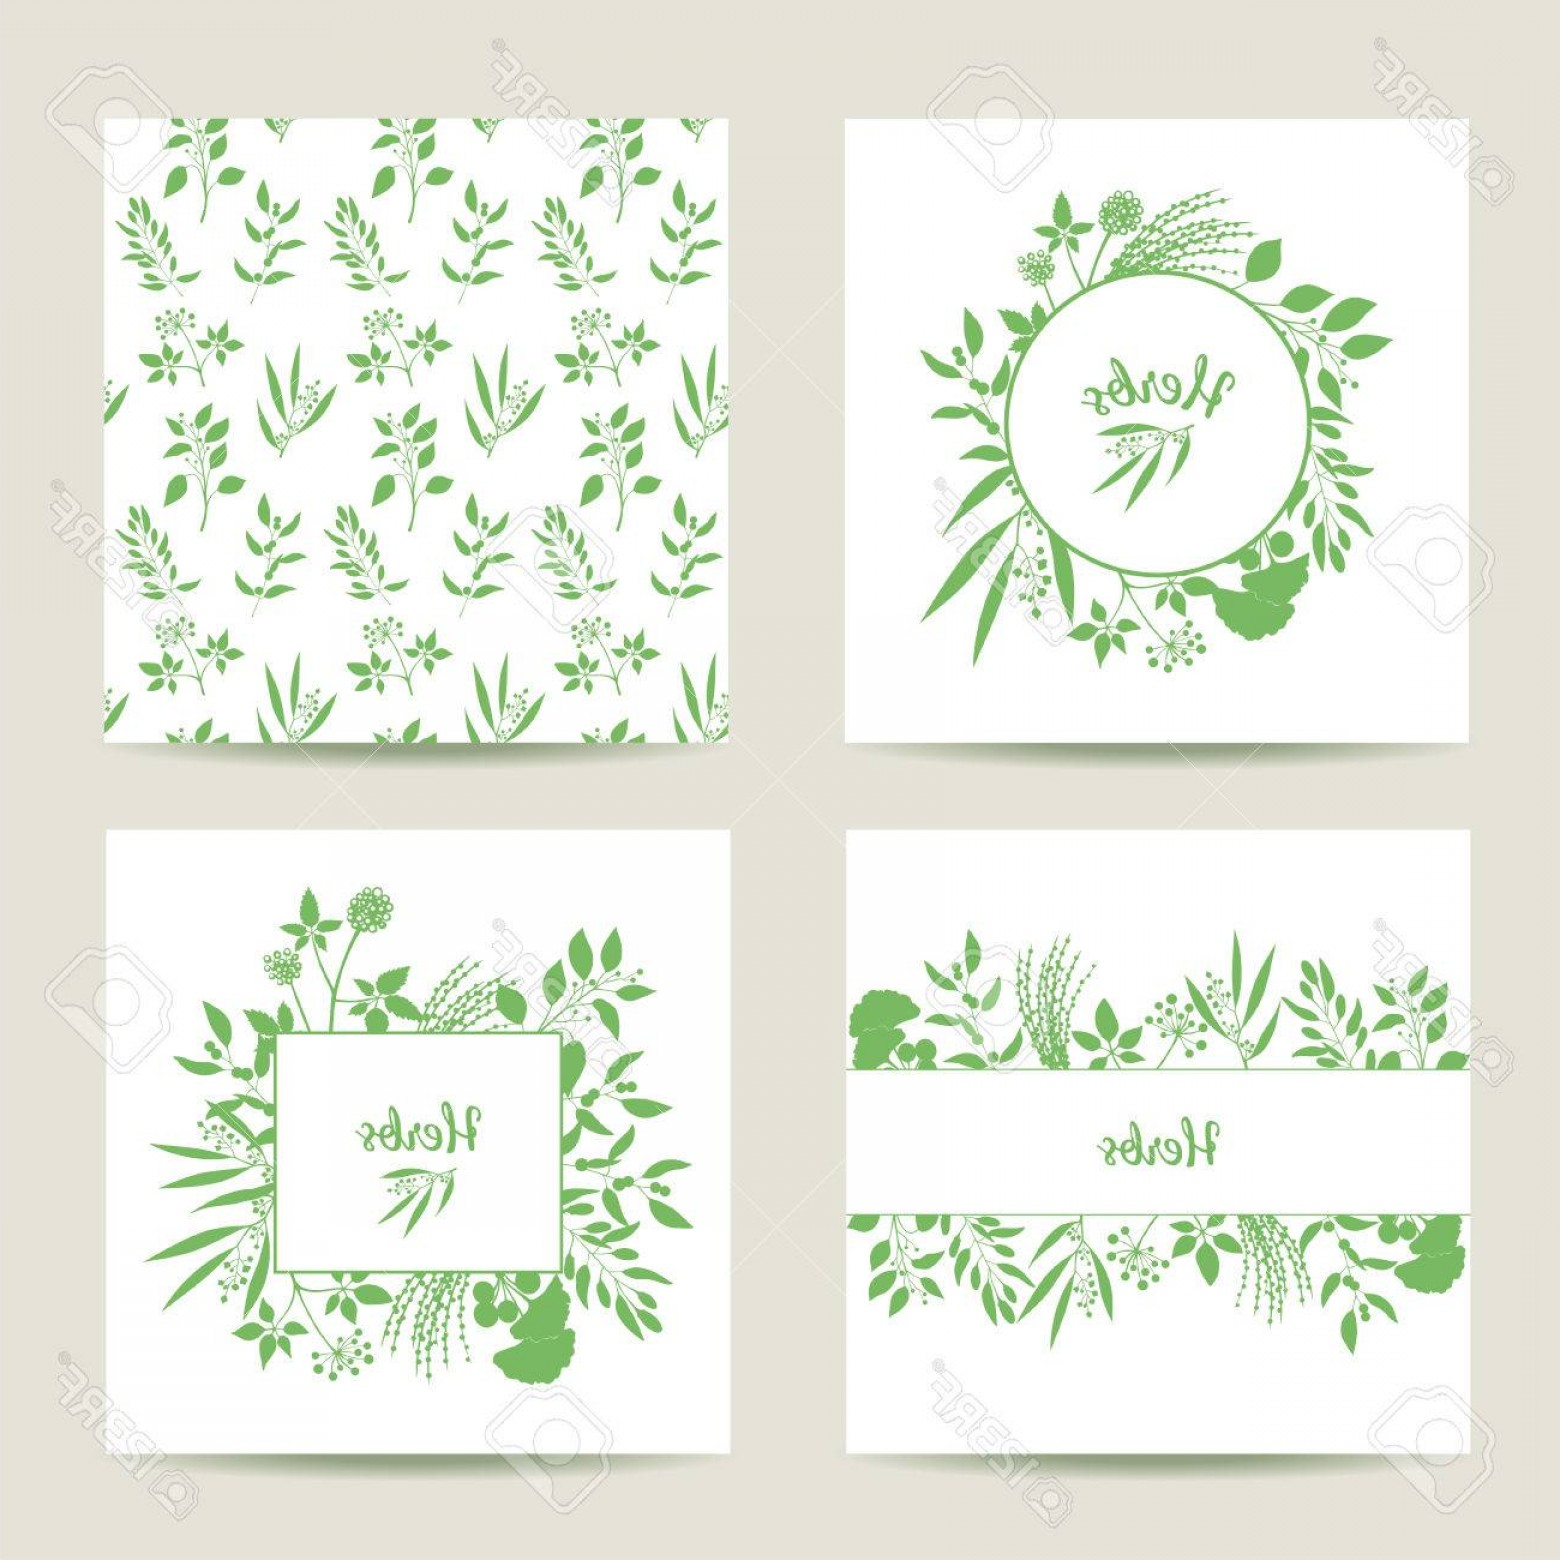 Plant Cards Vector: Photostock Vector Set Of Four Herbal Card Templates Square Cards Vector Illustration Green Round And Square Frame With